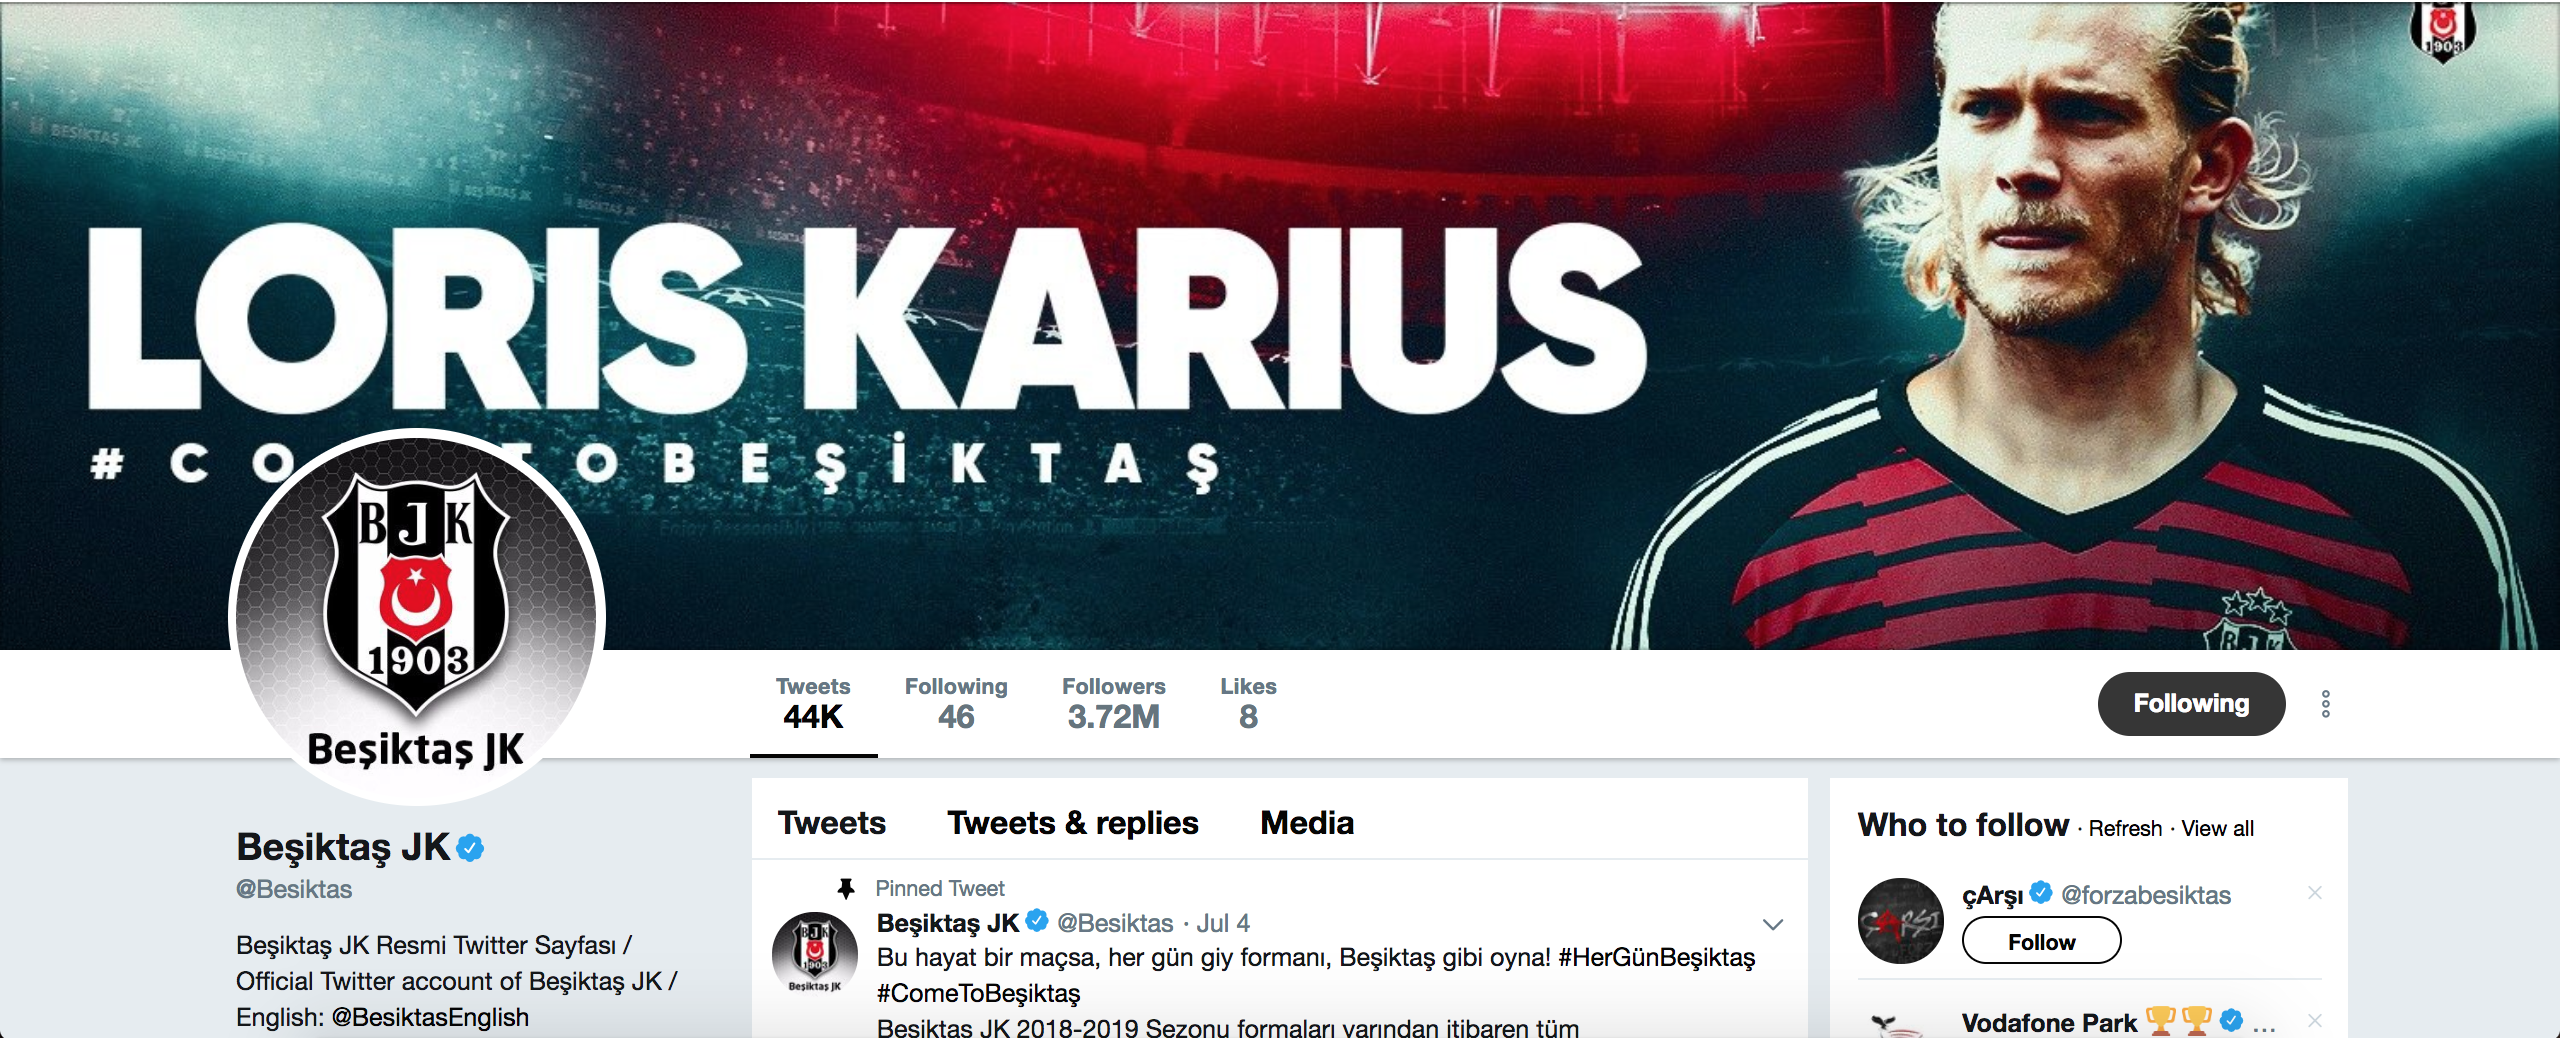 Summer 2018 confirmed transfers and contracts - Page 10 Karius-to-besiktas-twitter_1paitfq2nykur1shbudps0e425